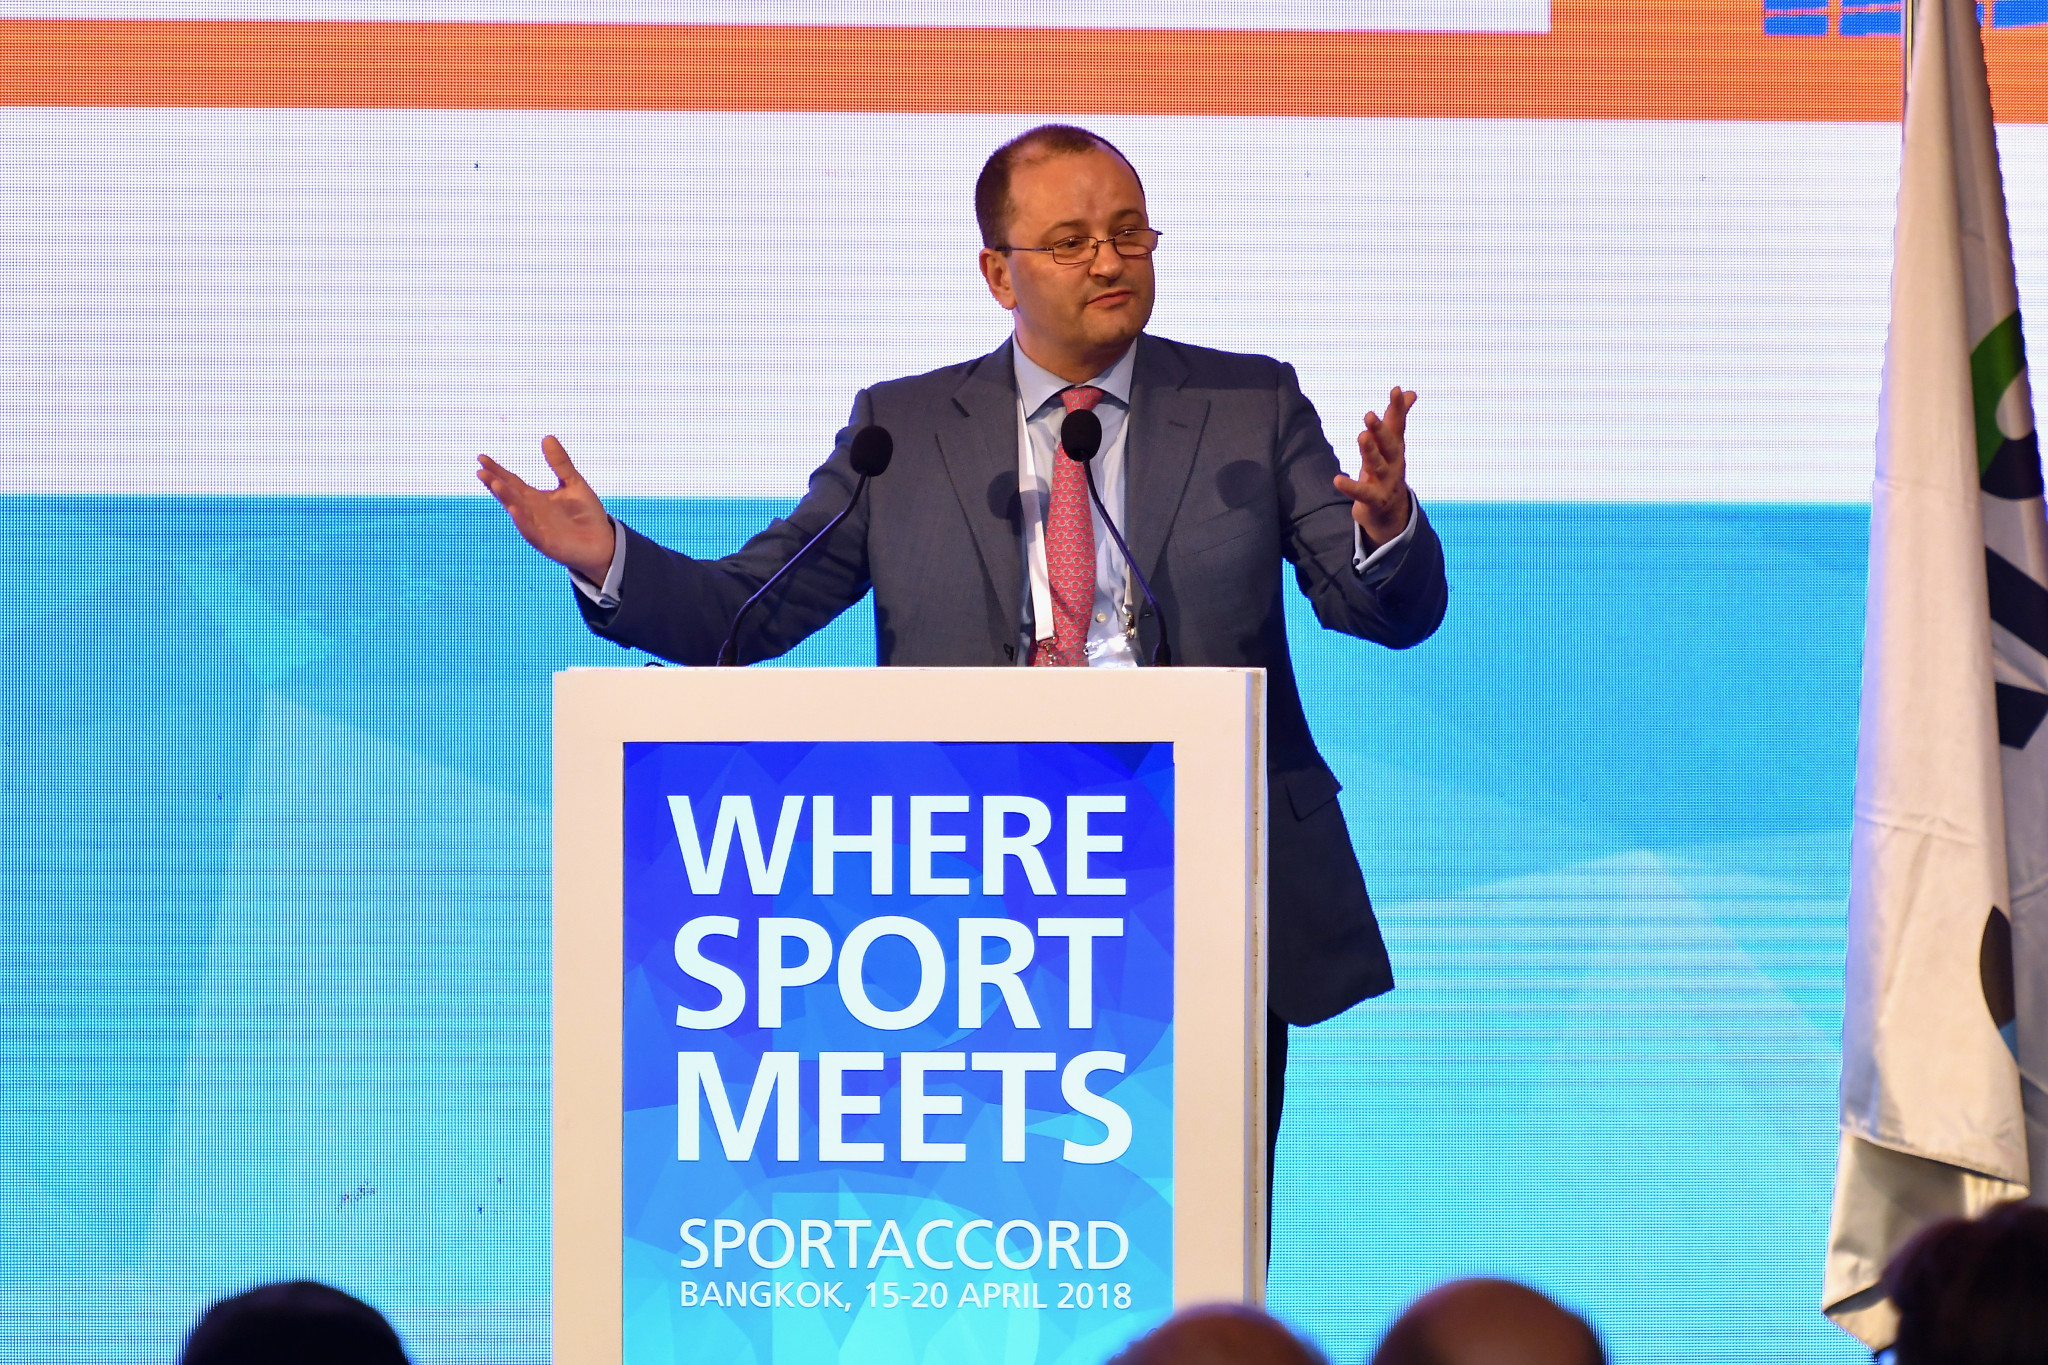 President Patrick Baumann led the Global Association of International Sports Federations' (GAISF) General Assembly on the final day of SportAccord Summit in Bangkok ©SportAccord/Flickr